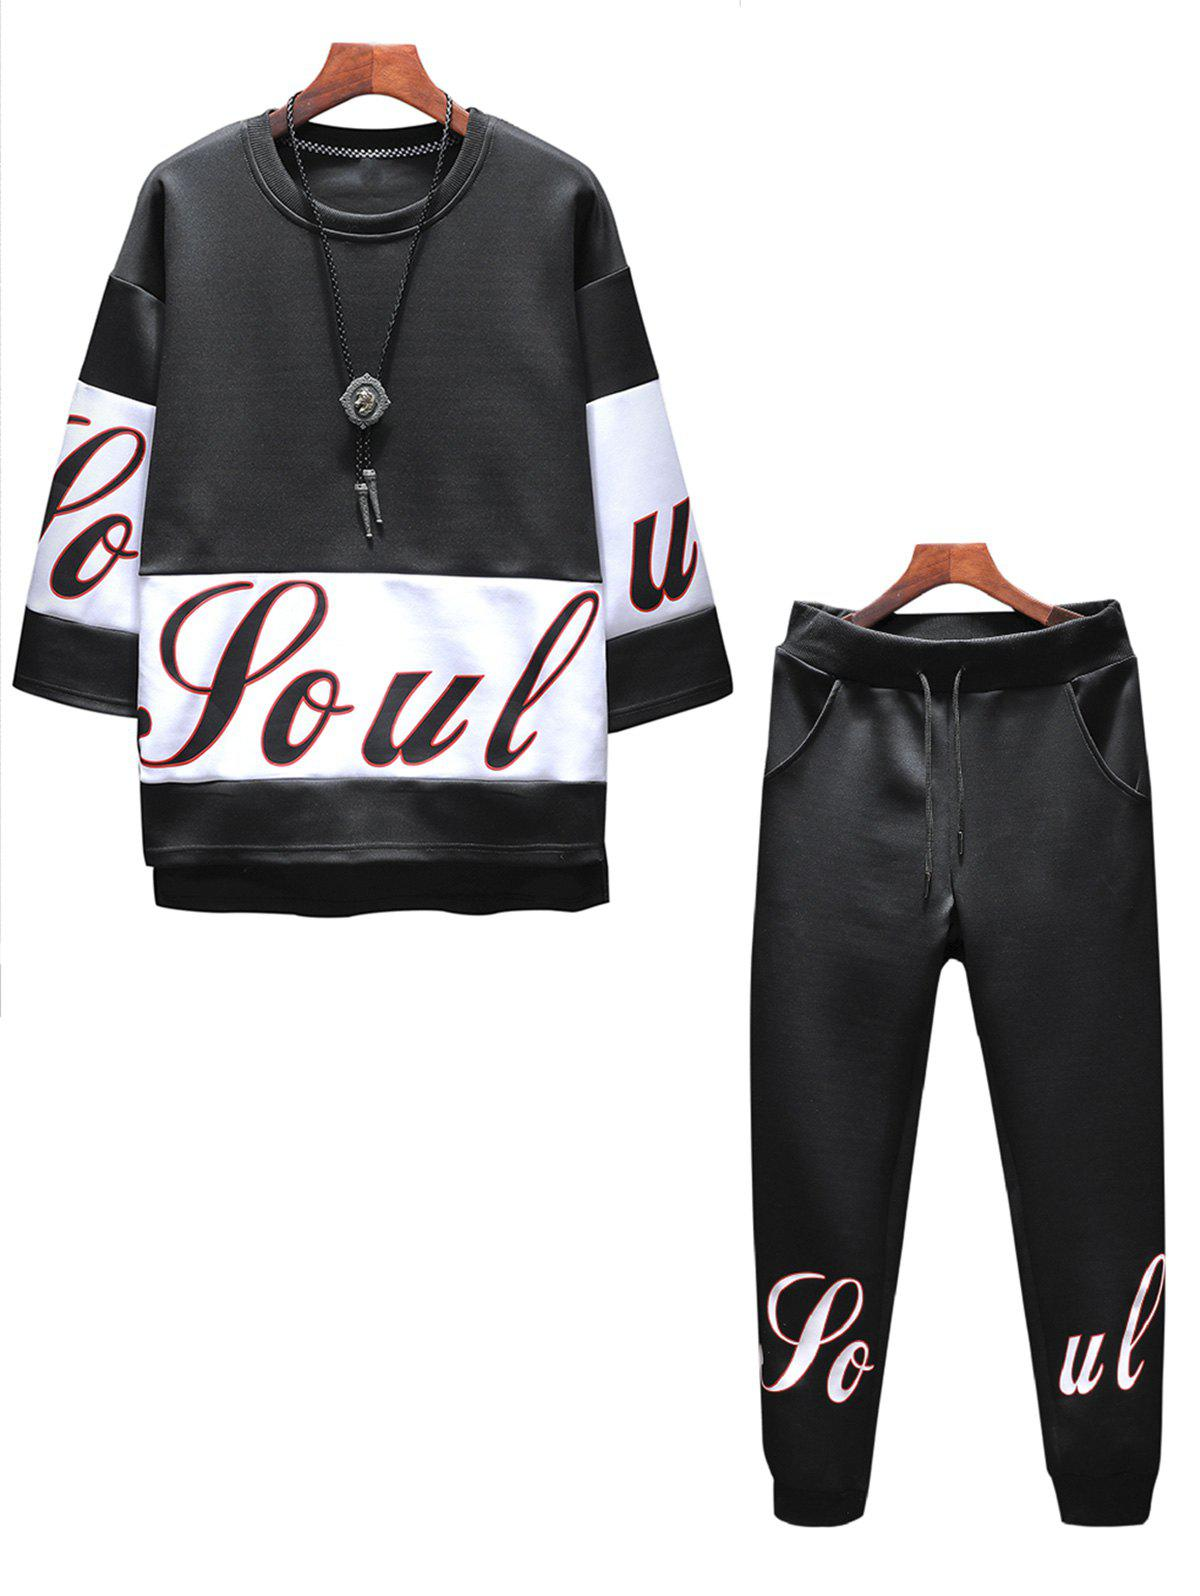 Discount Crew Neck Sweatshirt and Sweatpants Twinset